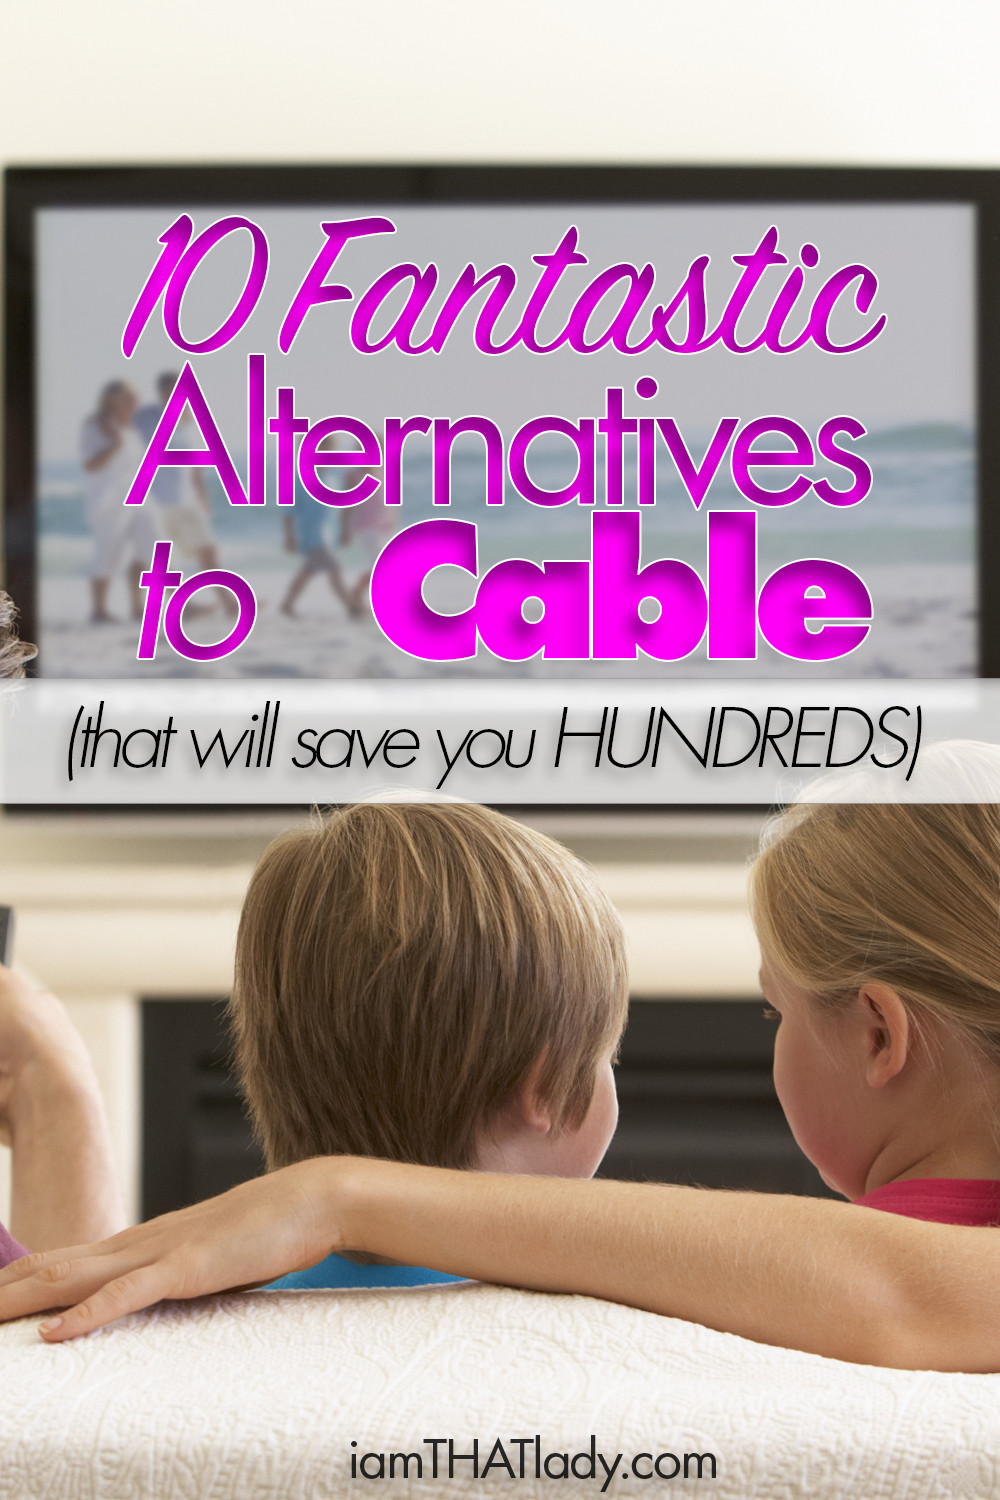 Are you sick of paying so much for your cable bill? Here are 10 amazing alternatives to cable that can help you reduce your bills by thousands per year!